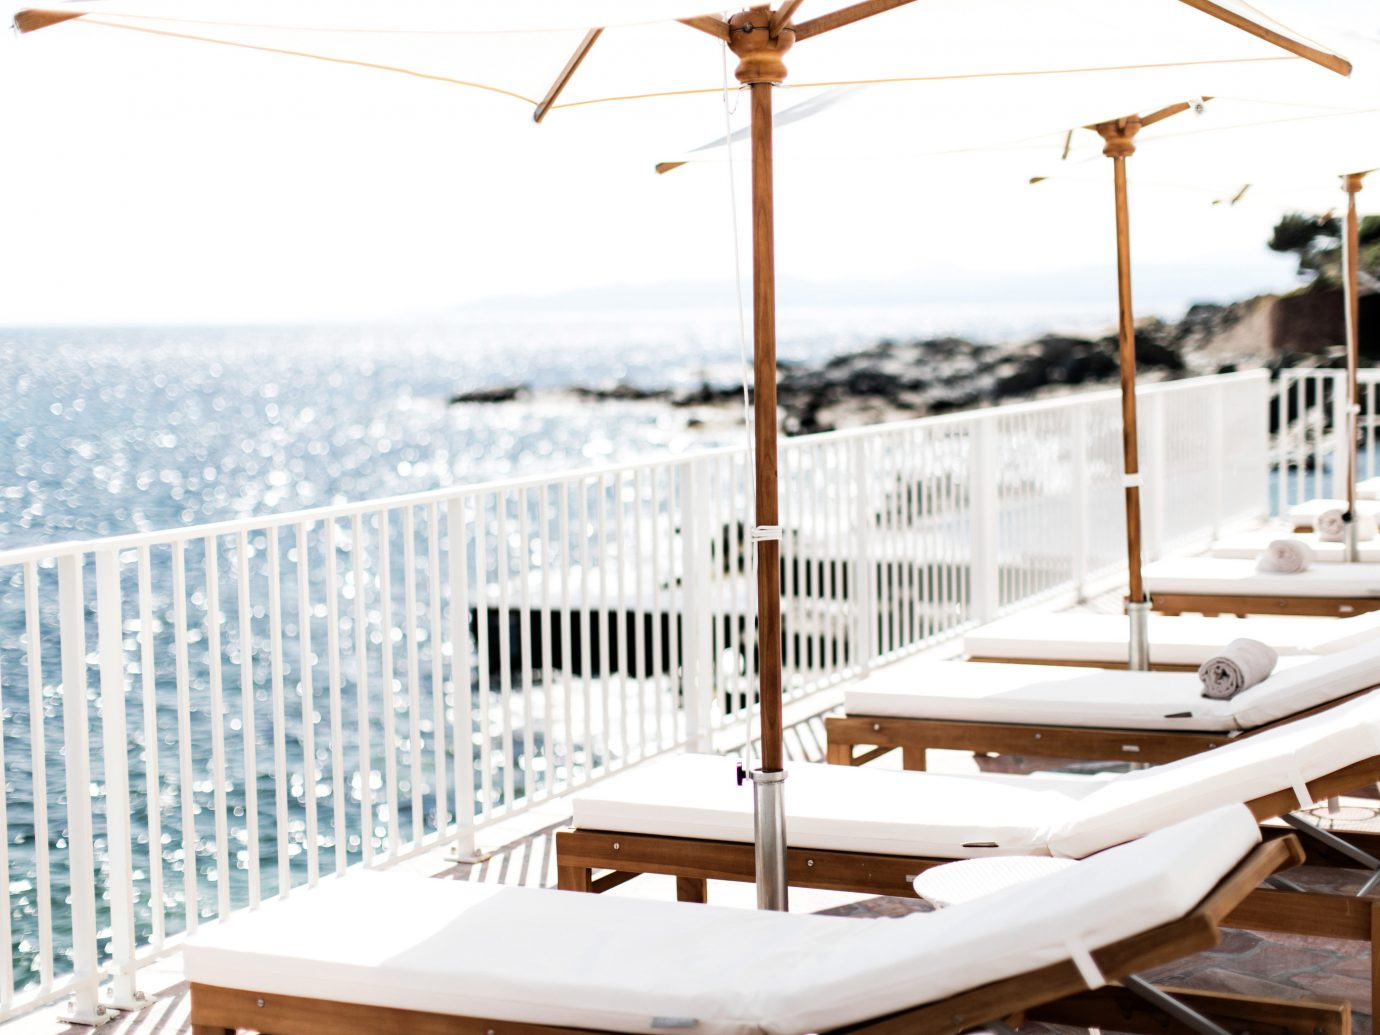 Boutique Hotels Hotels Luxury Travel sky outdoor water Sea vacation Deck